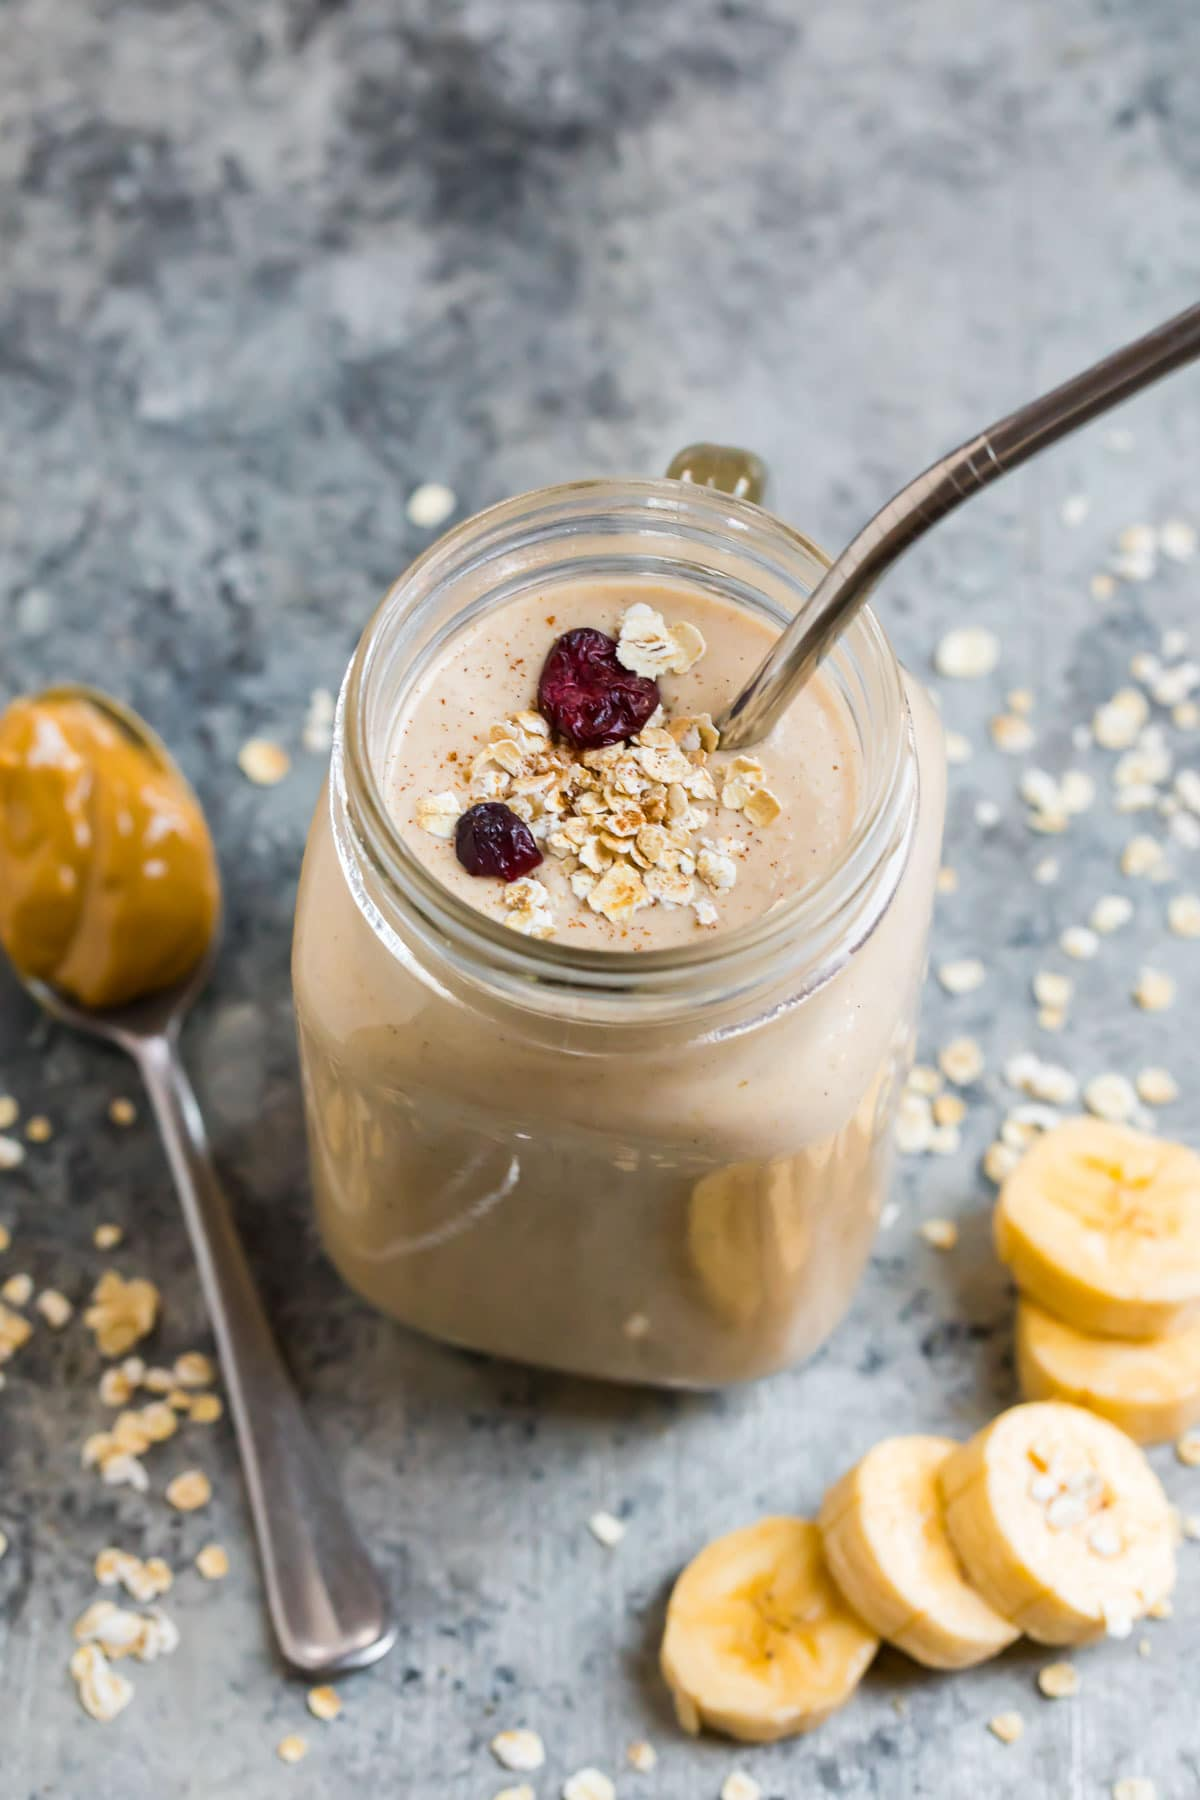 A delicious, creamy breakfast drink made with healthy ingredients